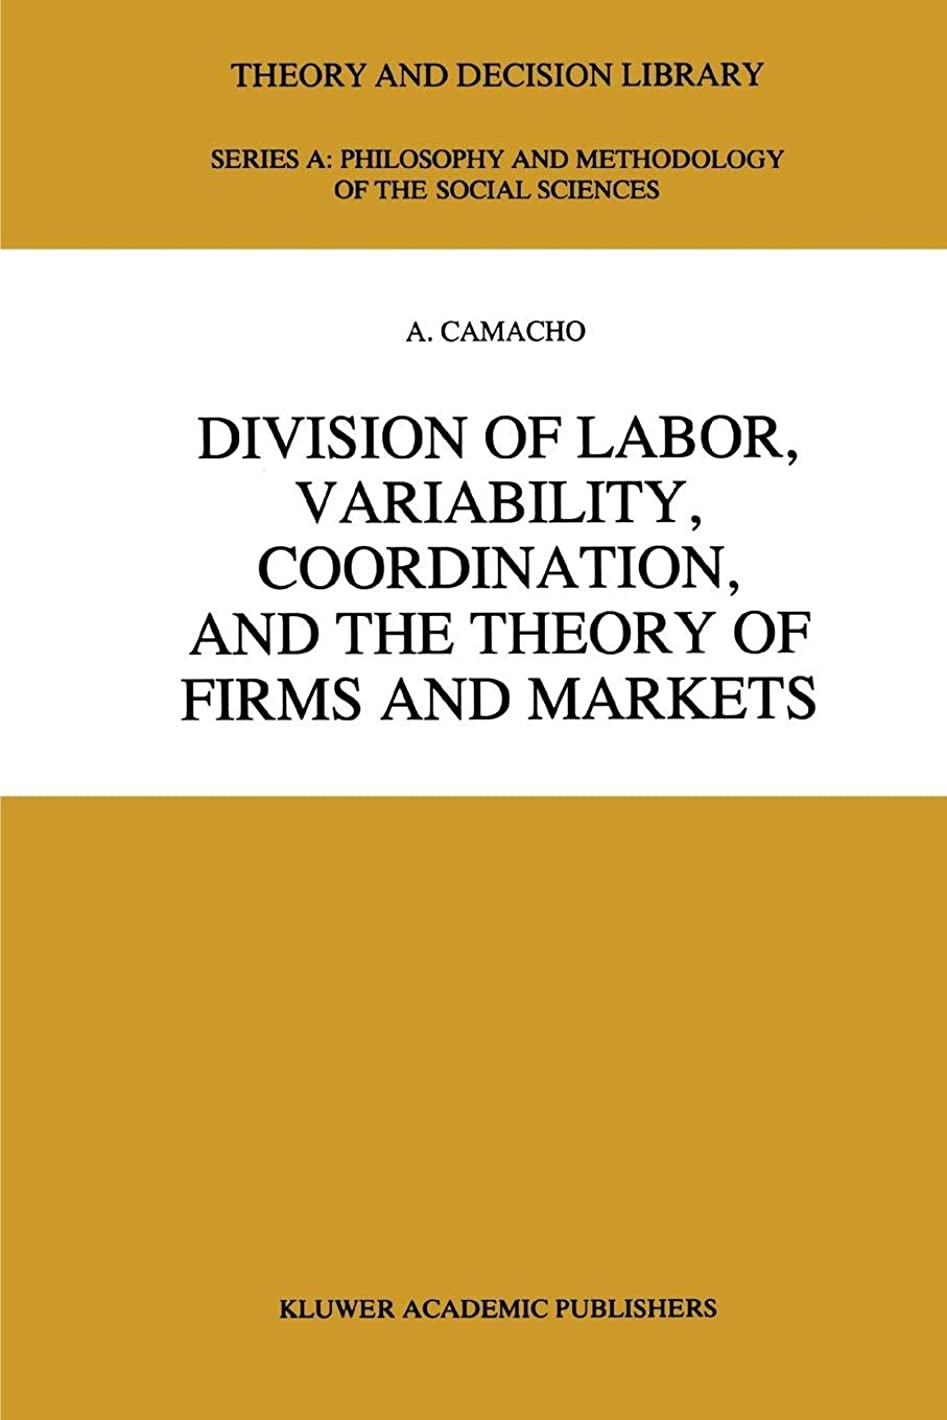 大脳小さい精神医学Division of Labor, Variability, Coordination, and the Theory of Firms and Markets (Theory and Decision Library A:)